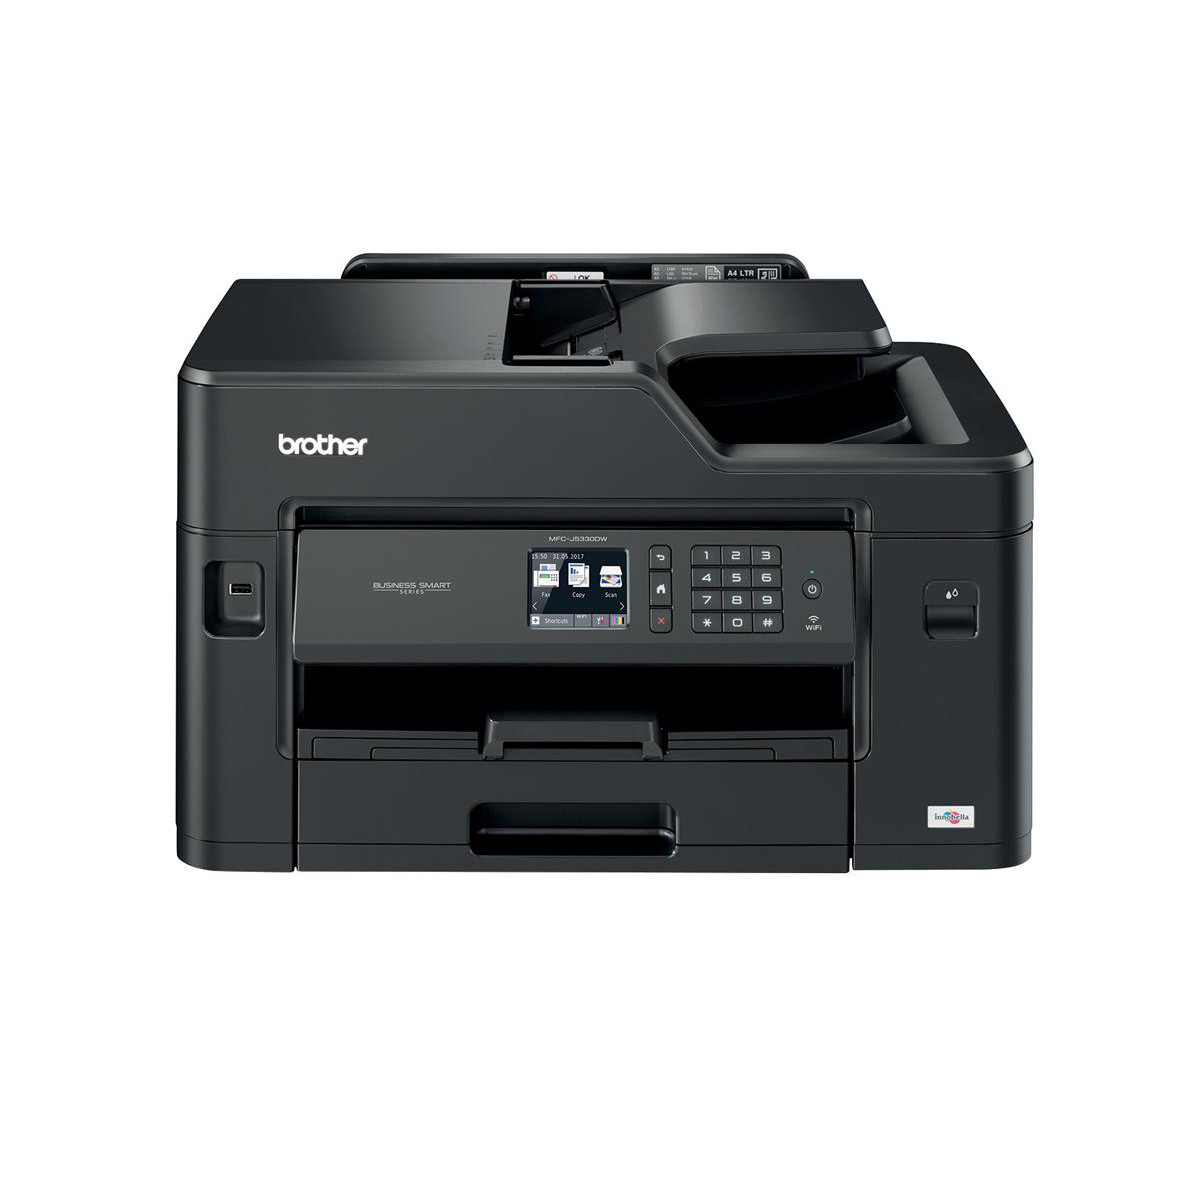 Multi function printers Brother Colour Multifunction A4 Inkjet Printer Ref MFCJ5330DWZU1